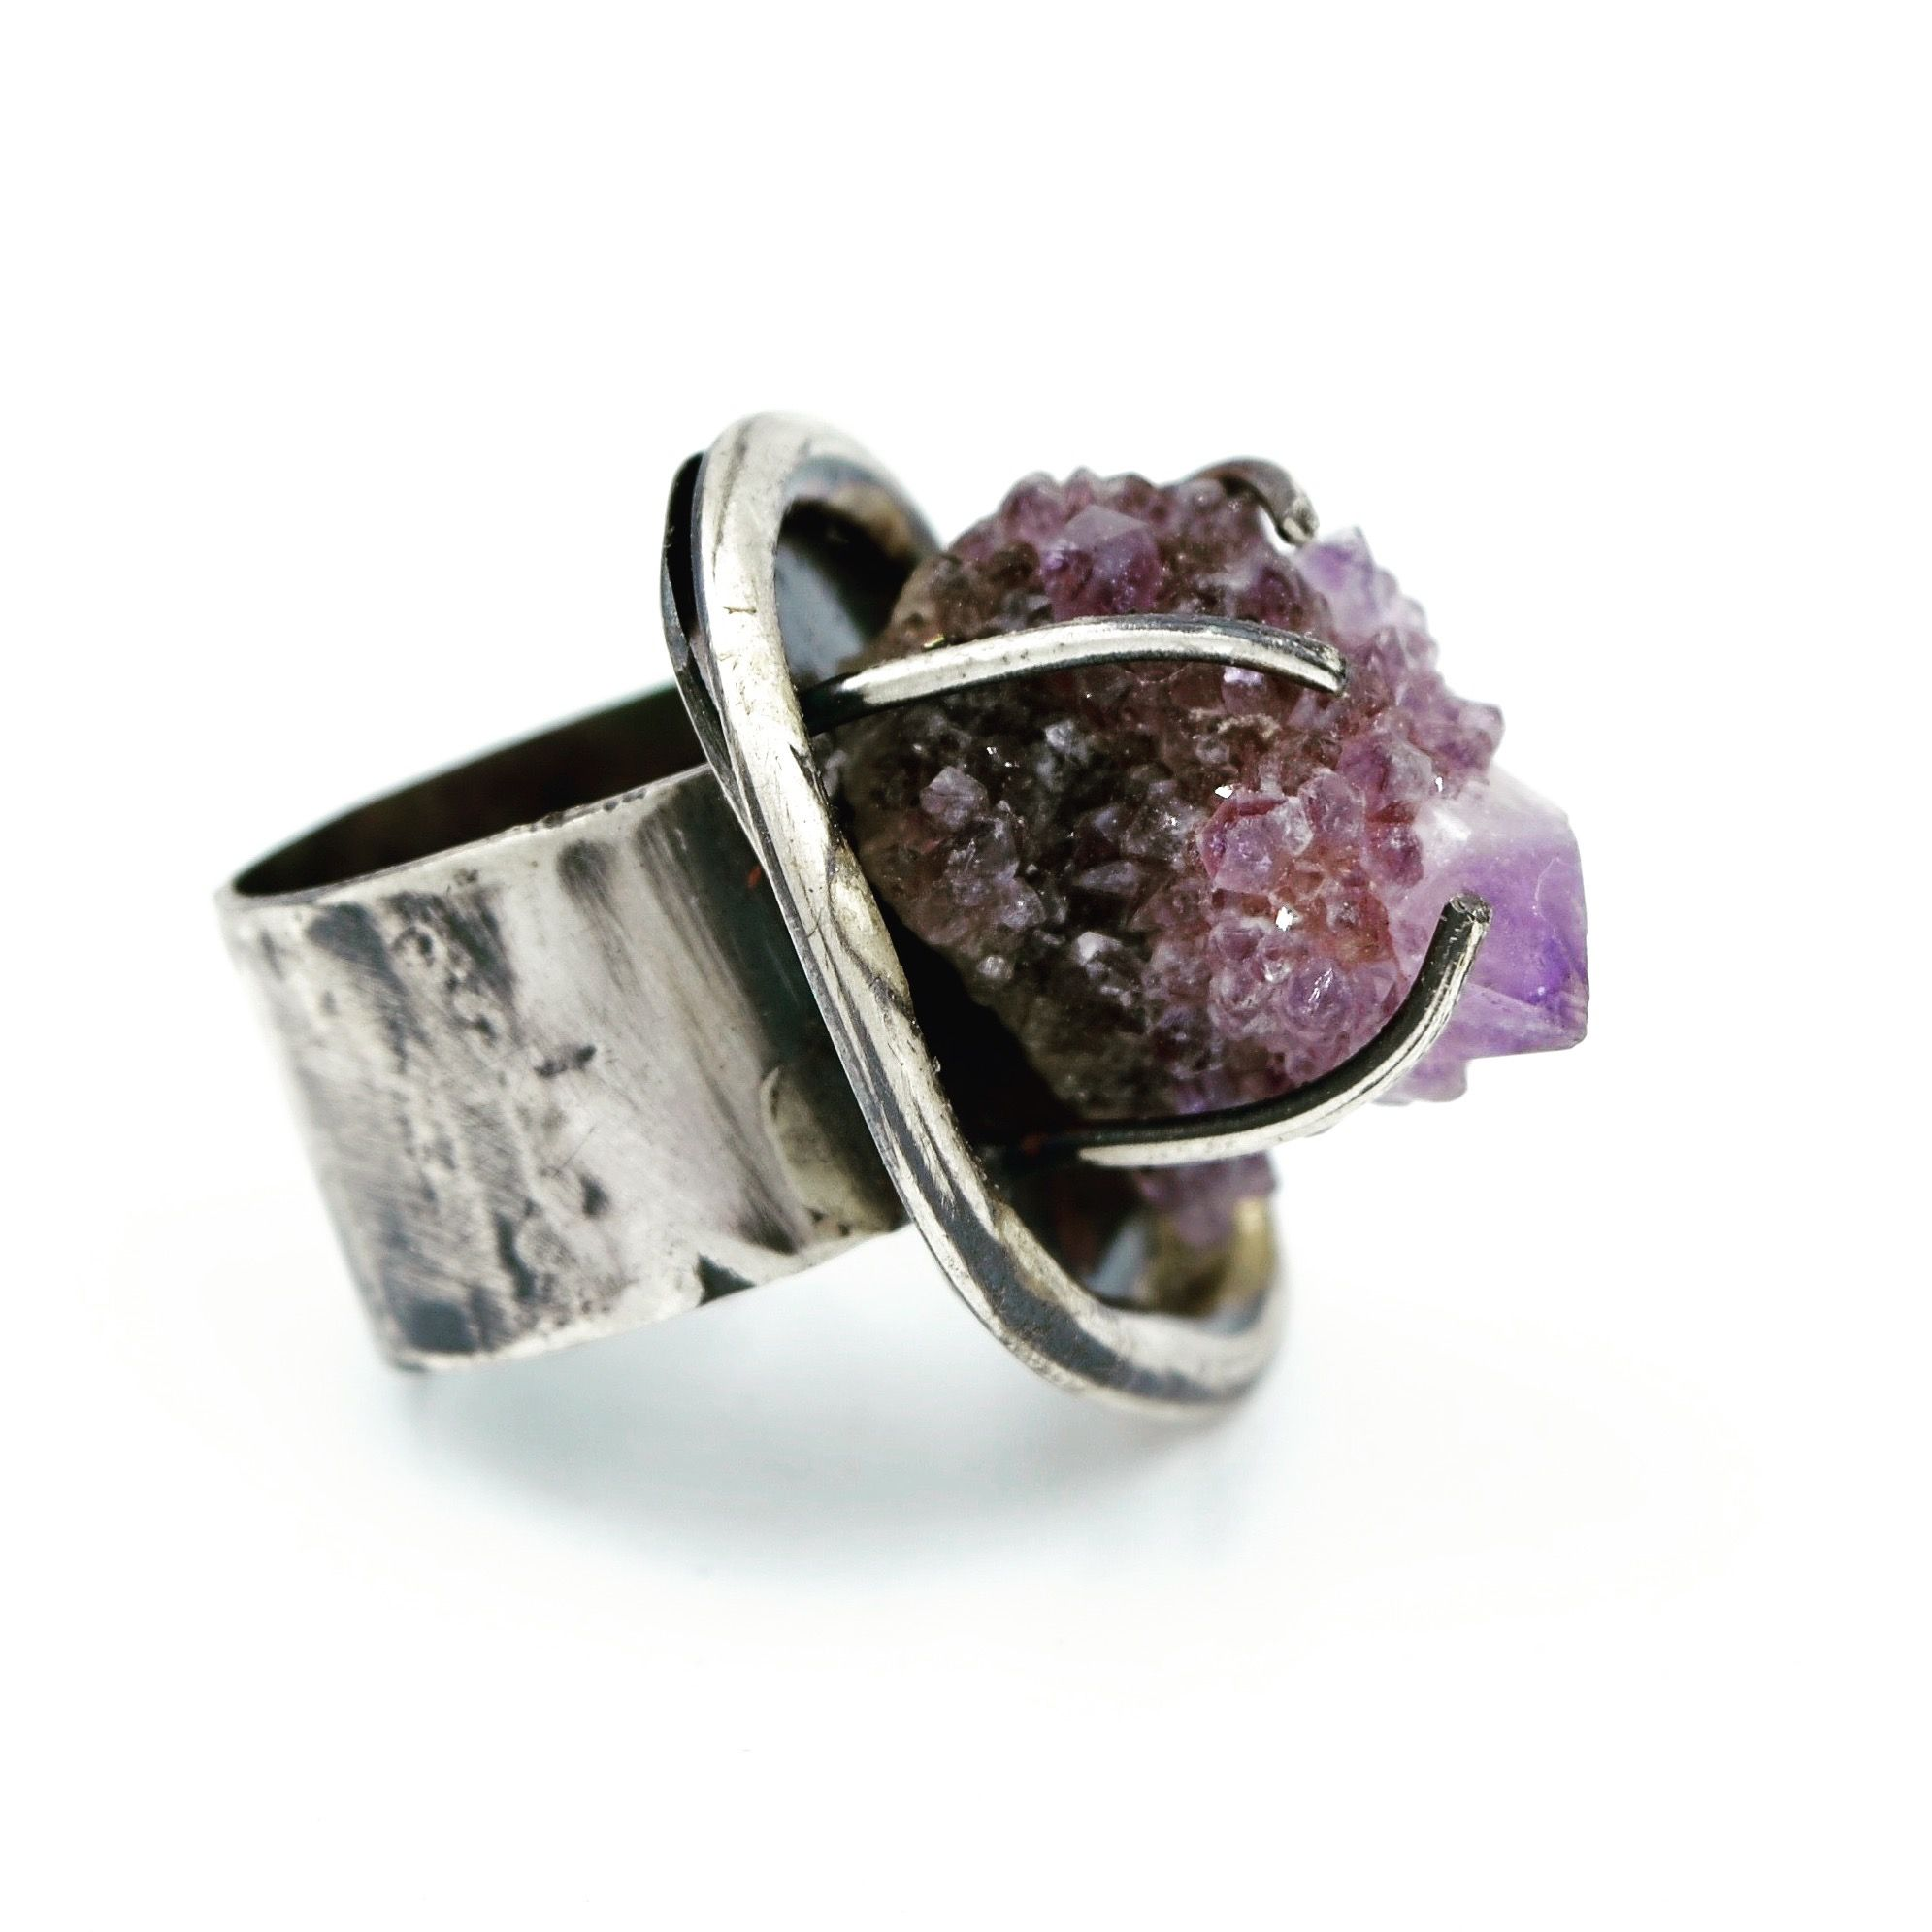 Contemporary Jewelry:  Sterling silver ring, set with a raw, natural Amethyst